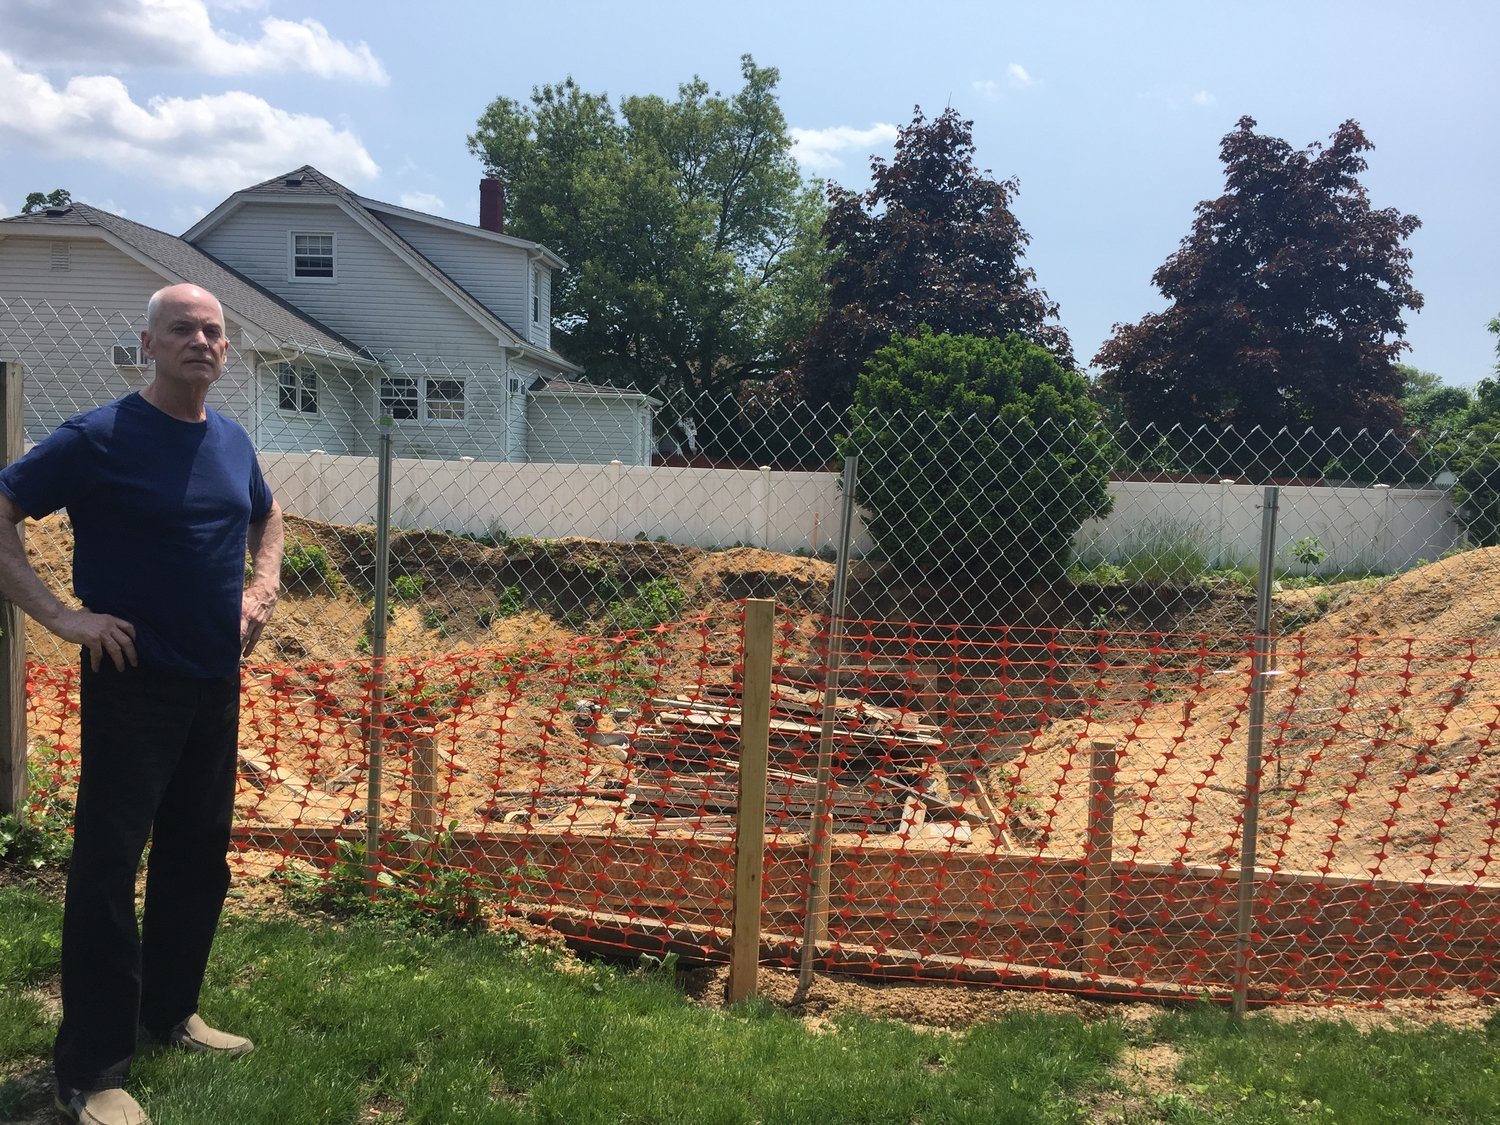 North Bellmore resident Daniel Butler stands next to the hole that has caused part of his backyard to collapse.